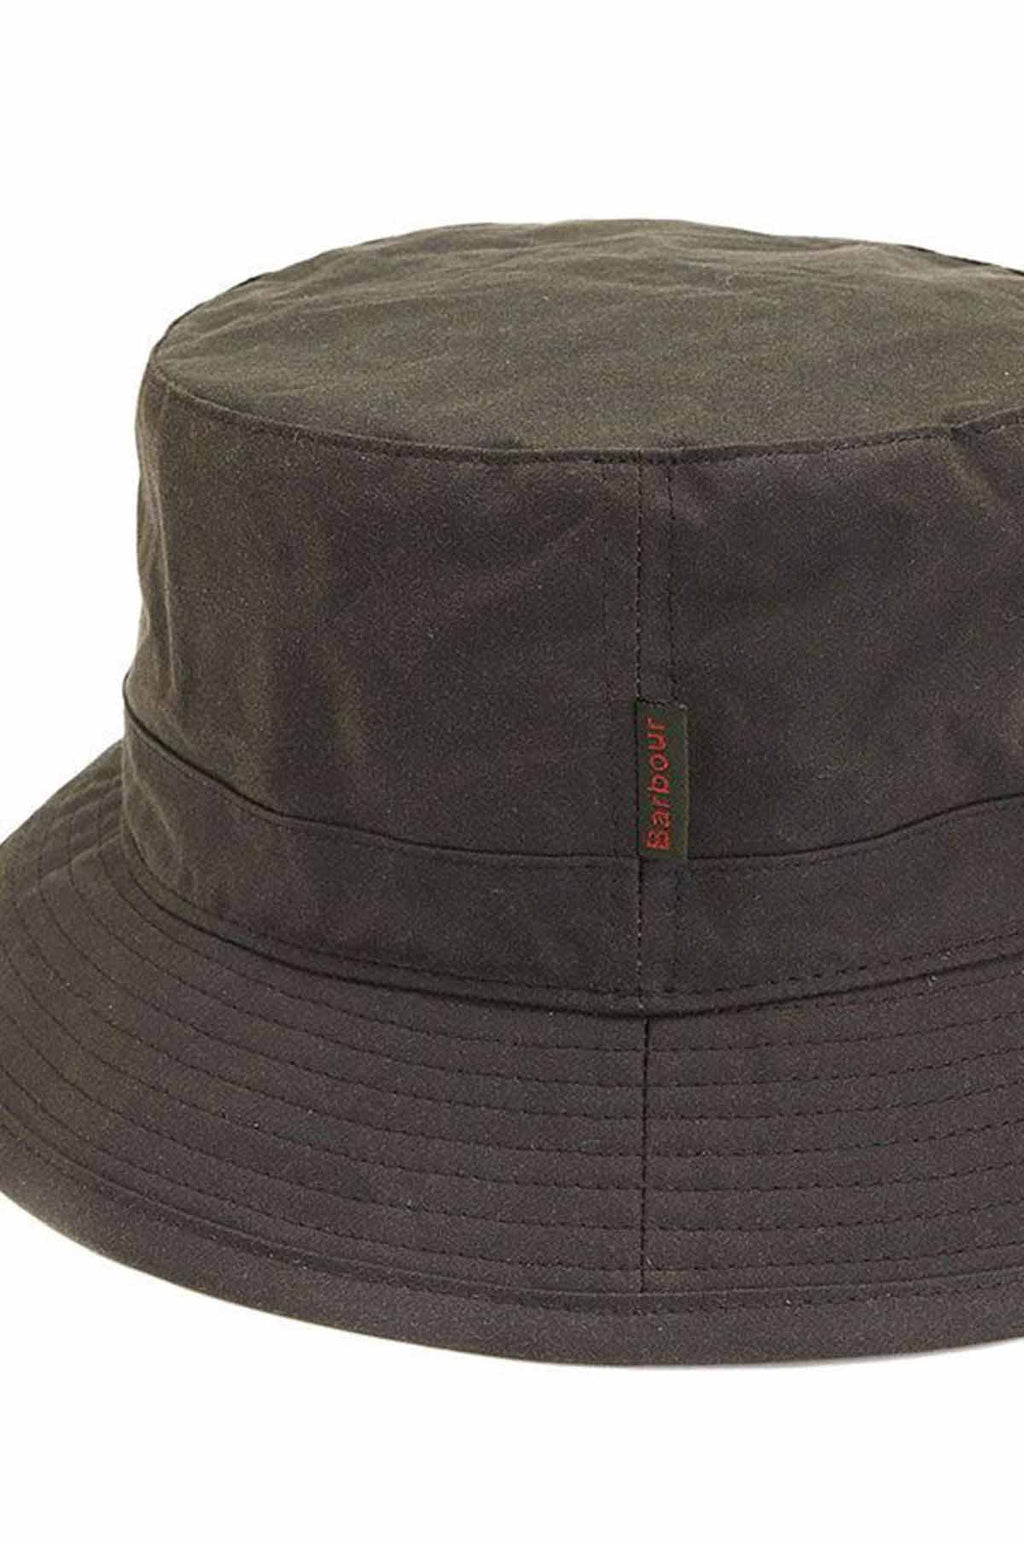 Wax Sports Hat in Olive